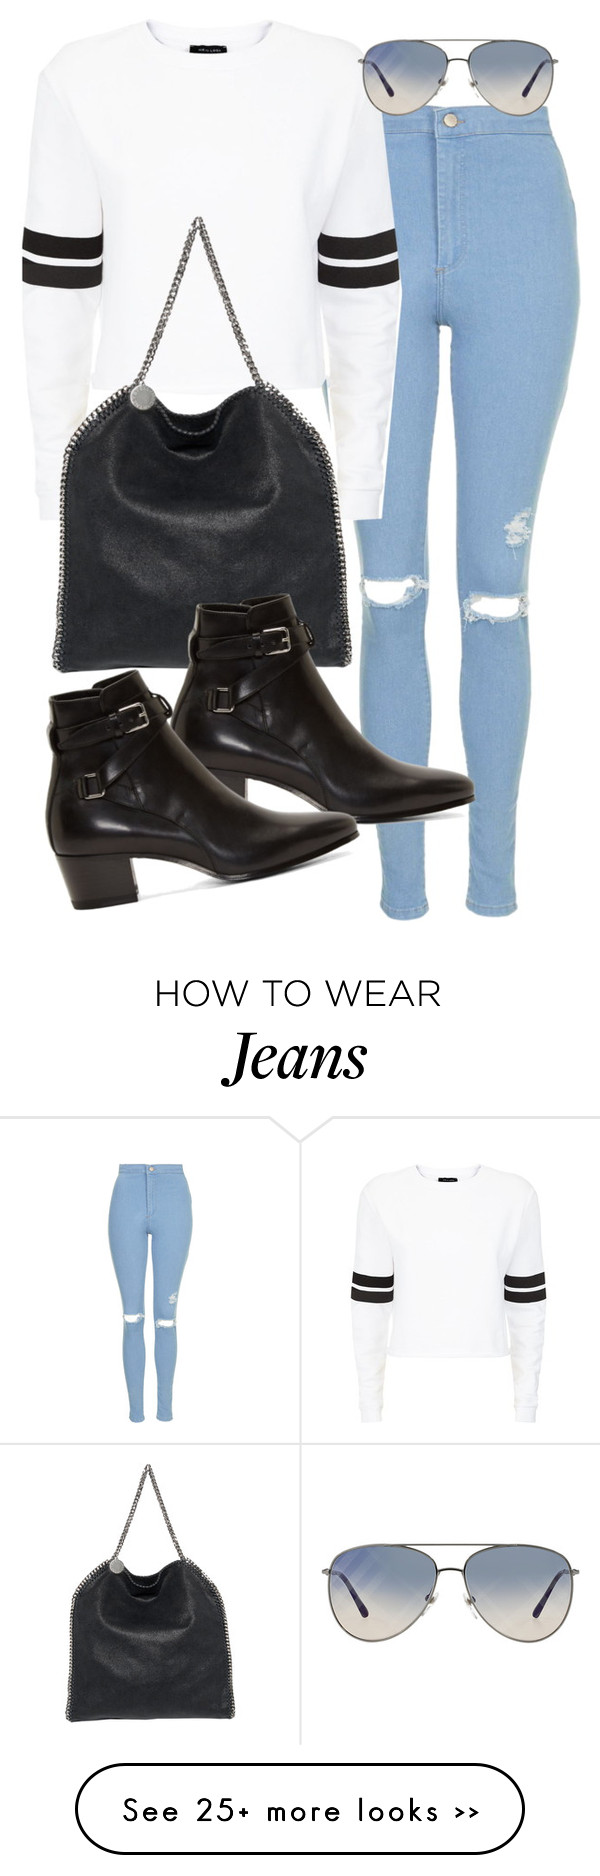 """Untitled #18365"" by florencia95 on Polyvore"